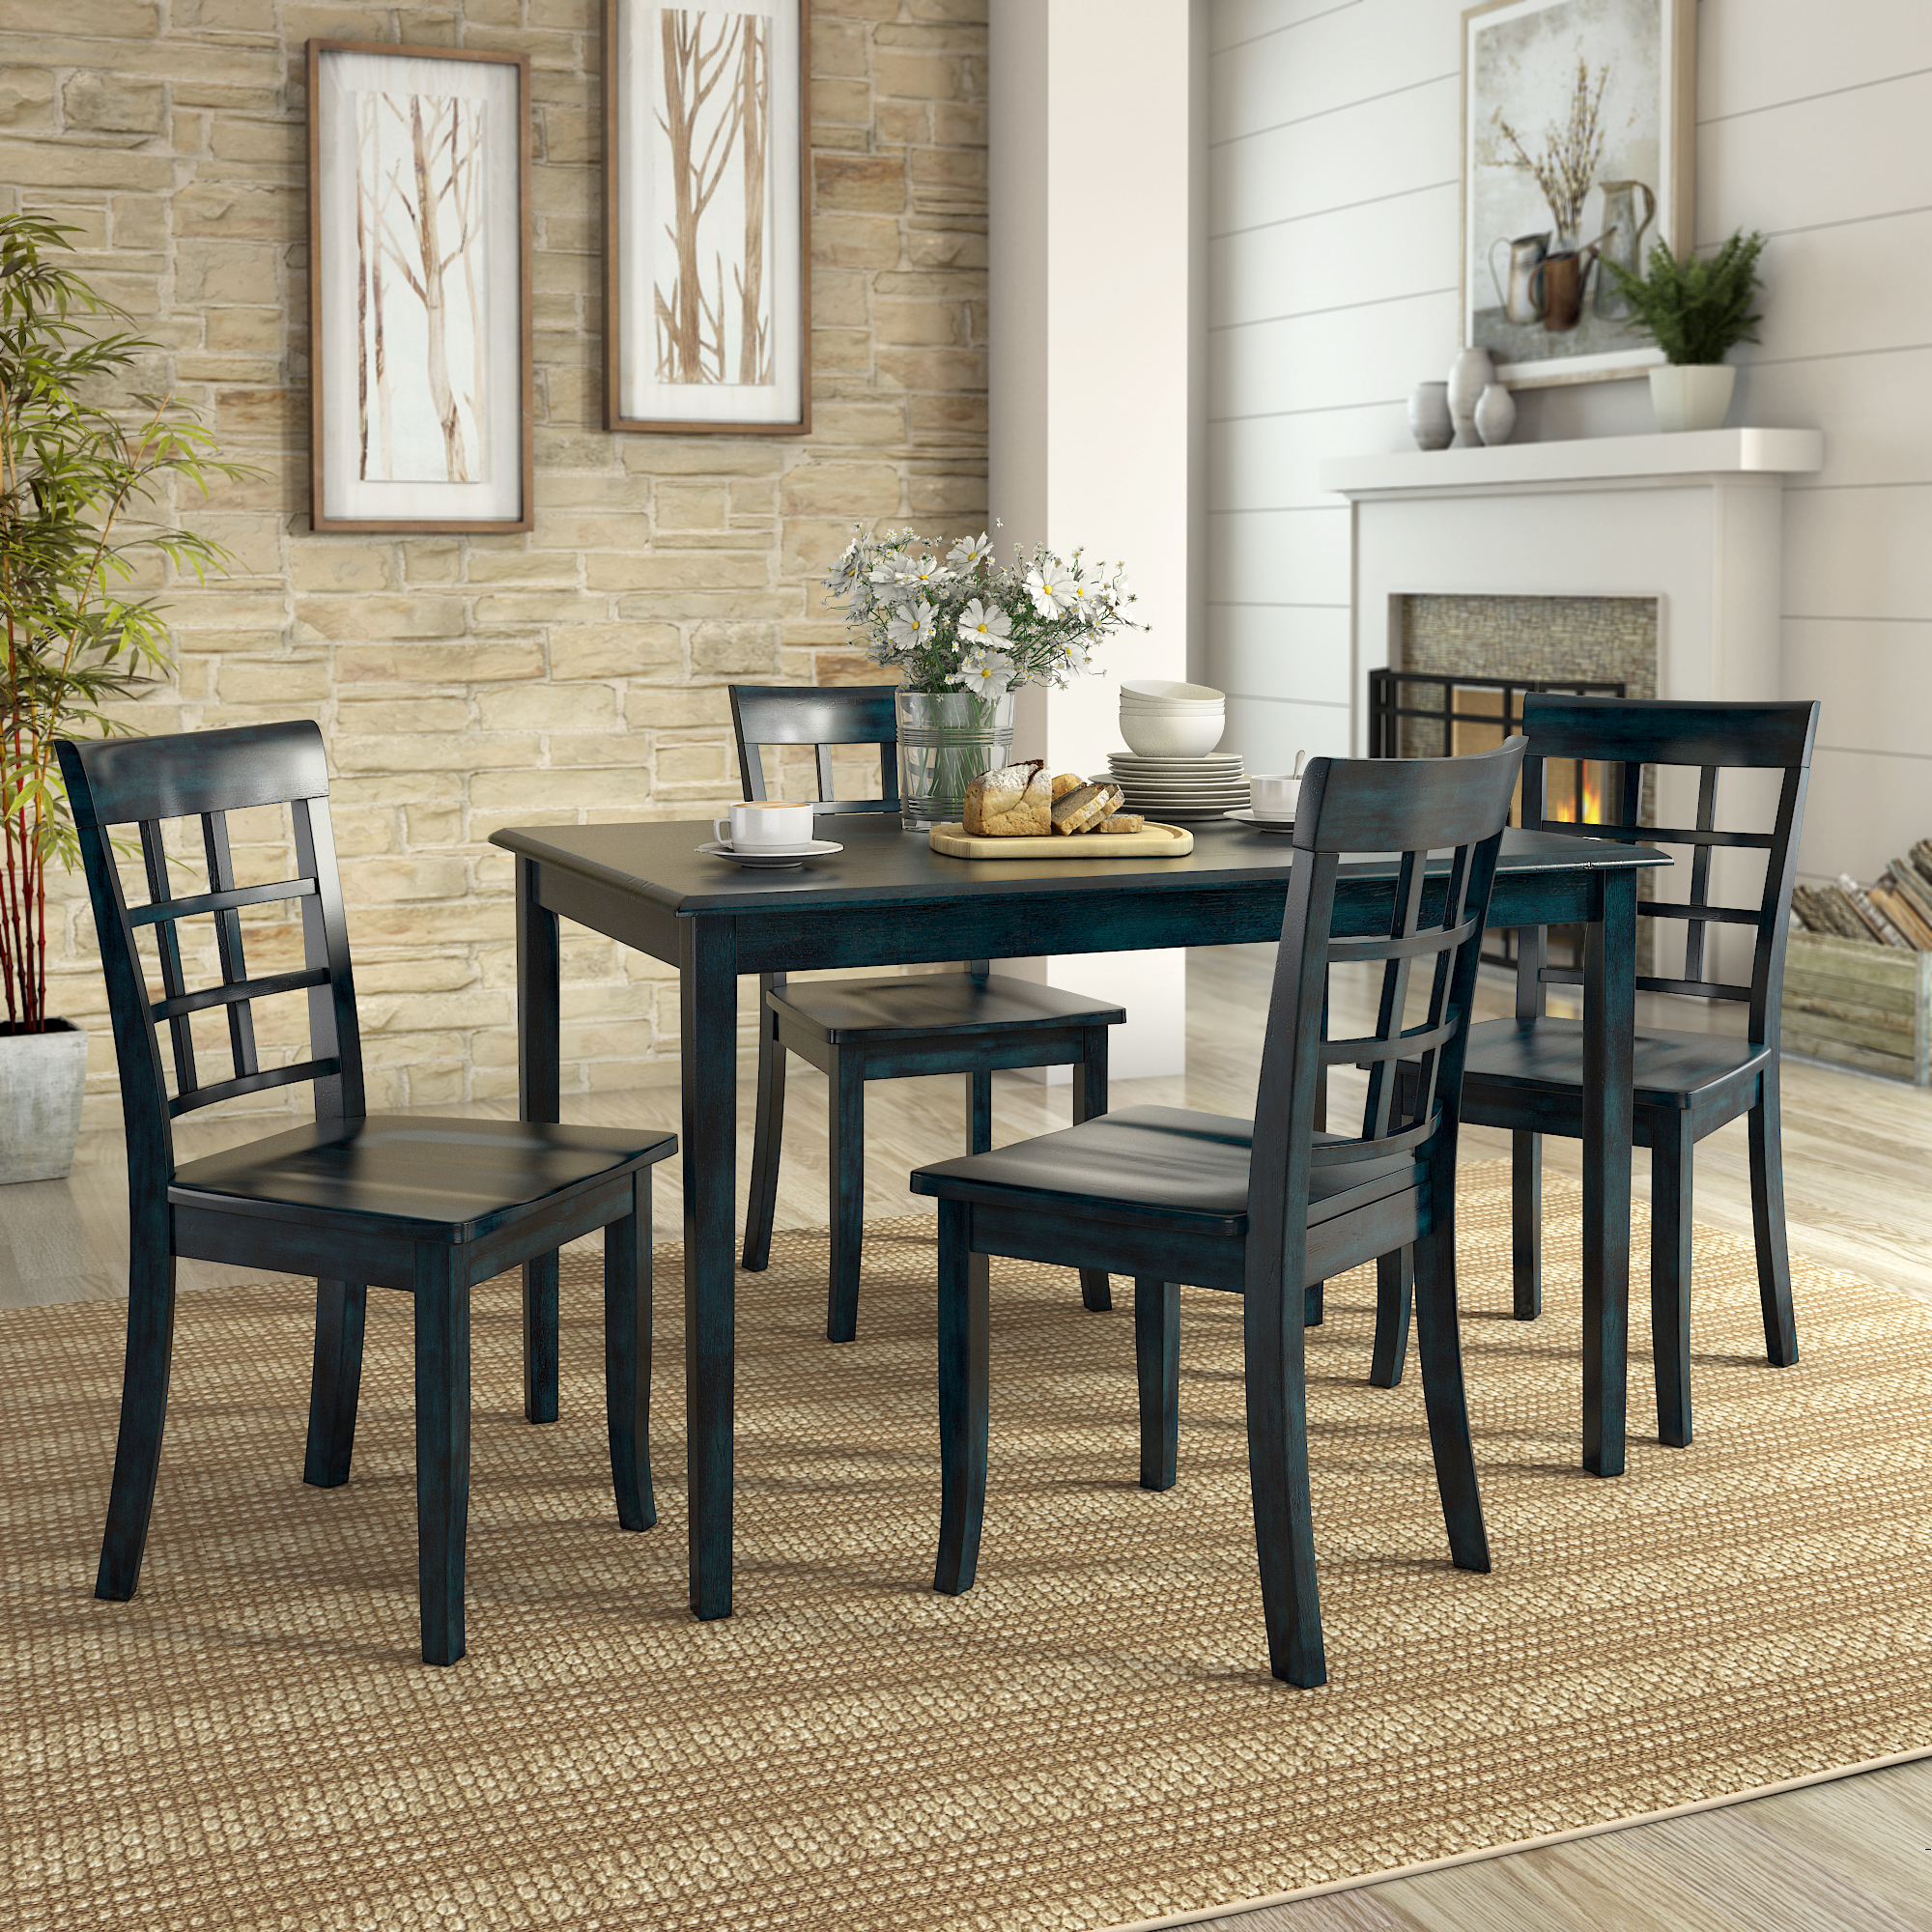 Lexington 5 Piece Dining Set With 4 Window Back Chairs